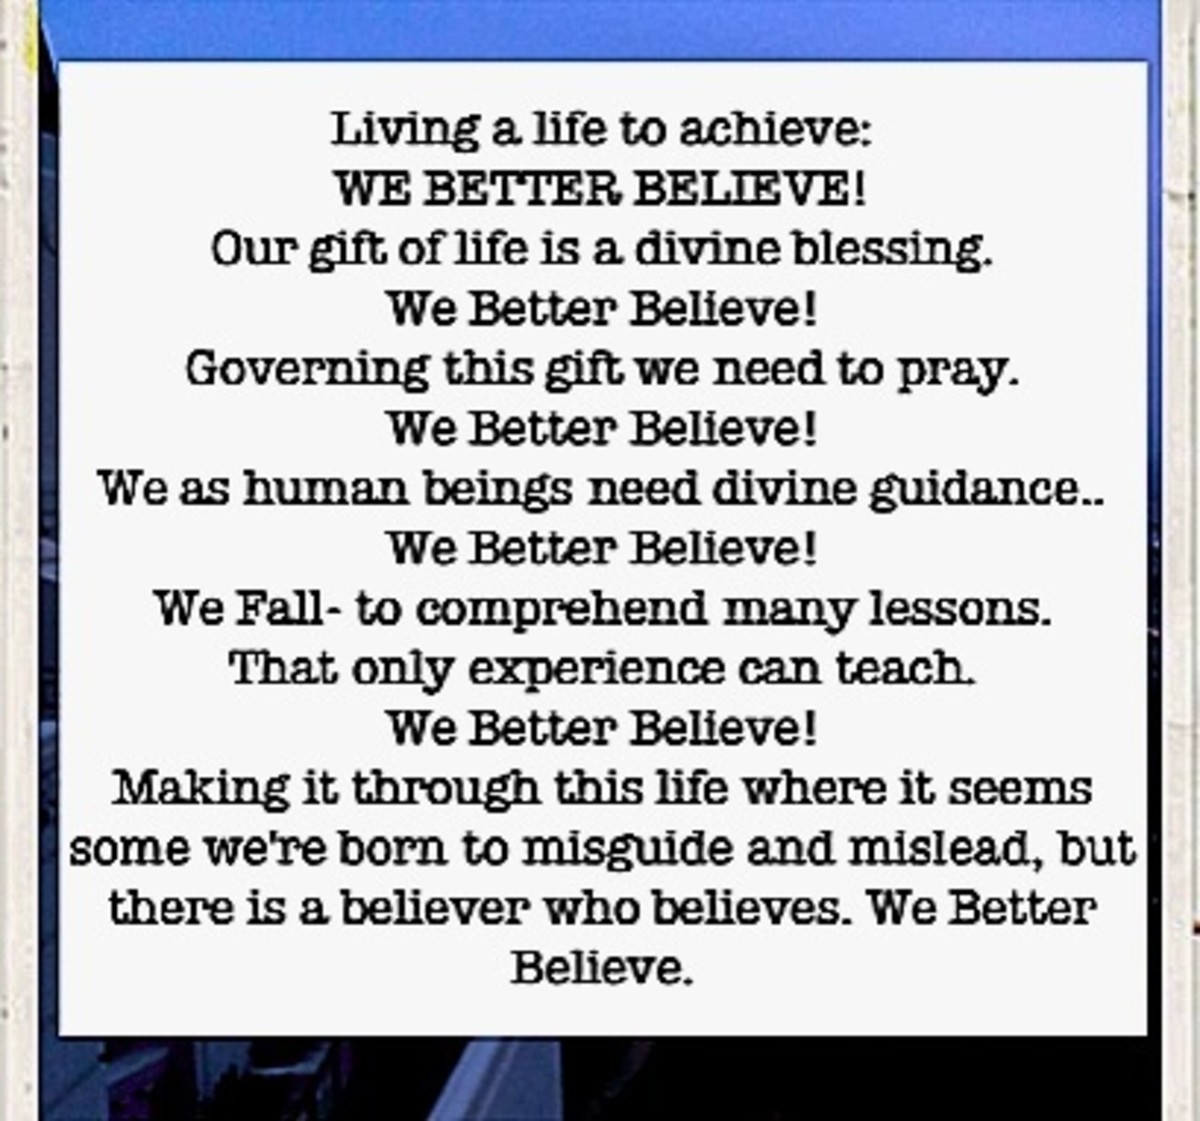 We Better Believe! We Better Believe that there is one who believes.